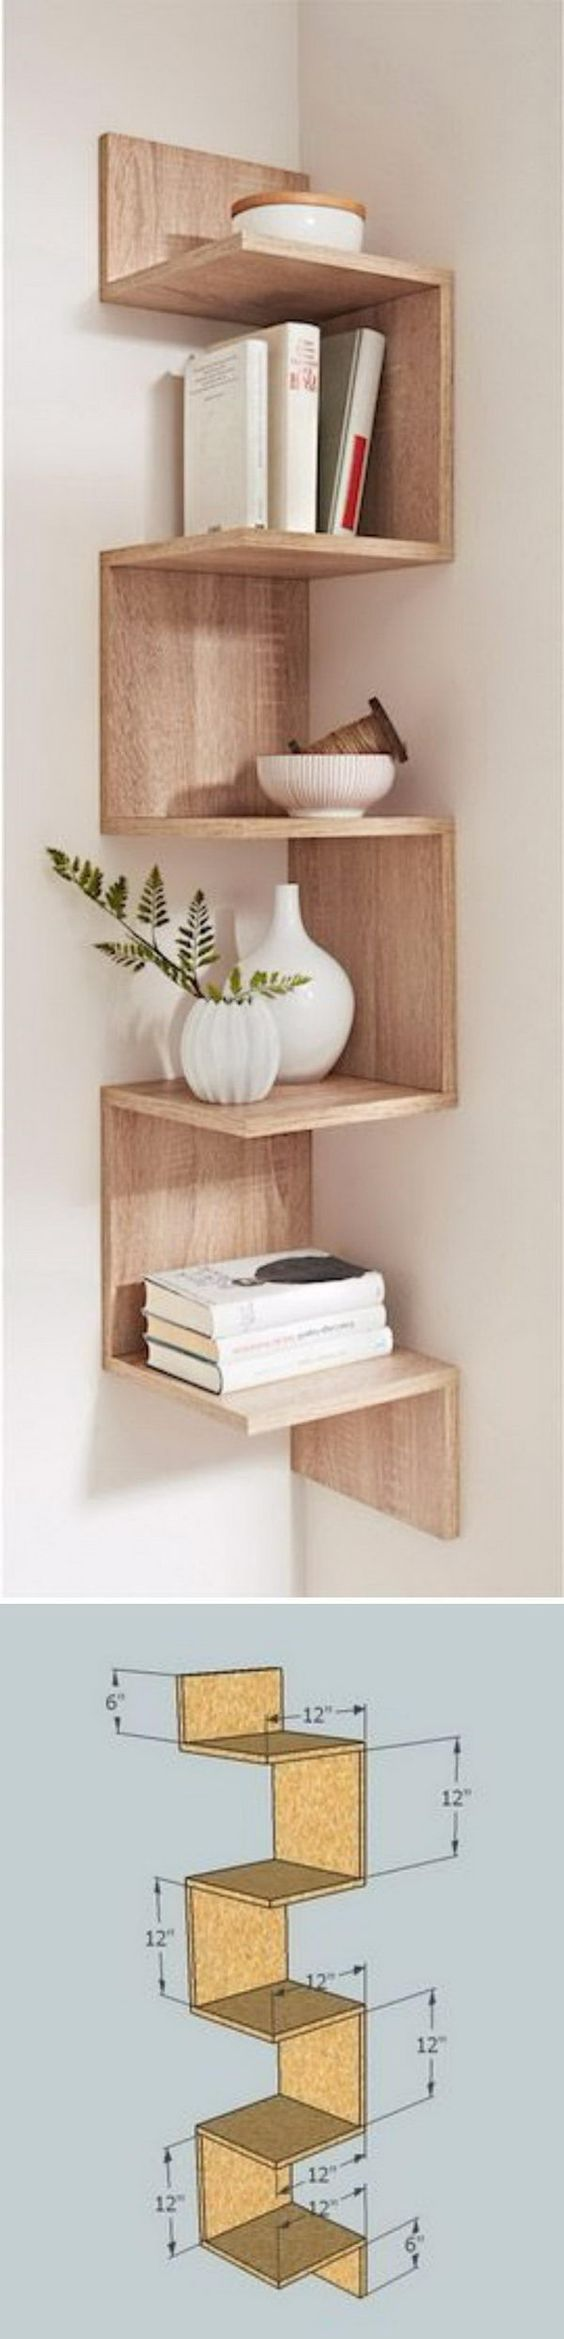 Wall Bookshelf Top 25 Best Wall Bookshelves Ideas On Pinterest Shelving Ikea